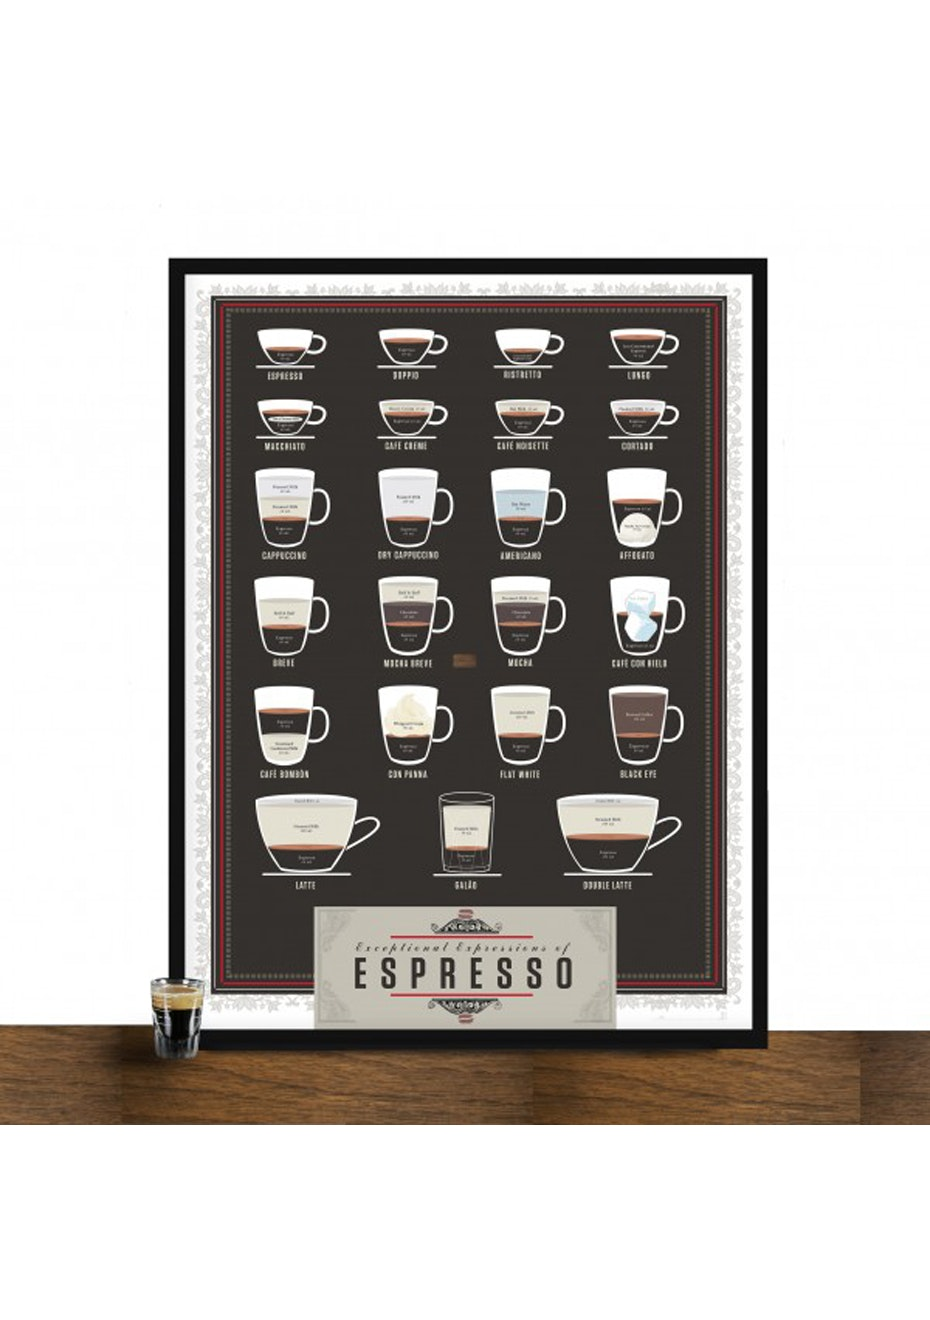 Pop Chart Lab - Exceptional Expressions of Espresso